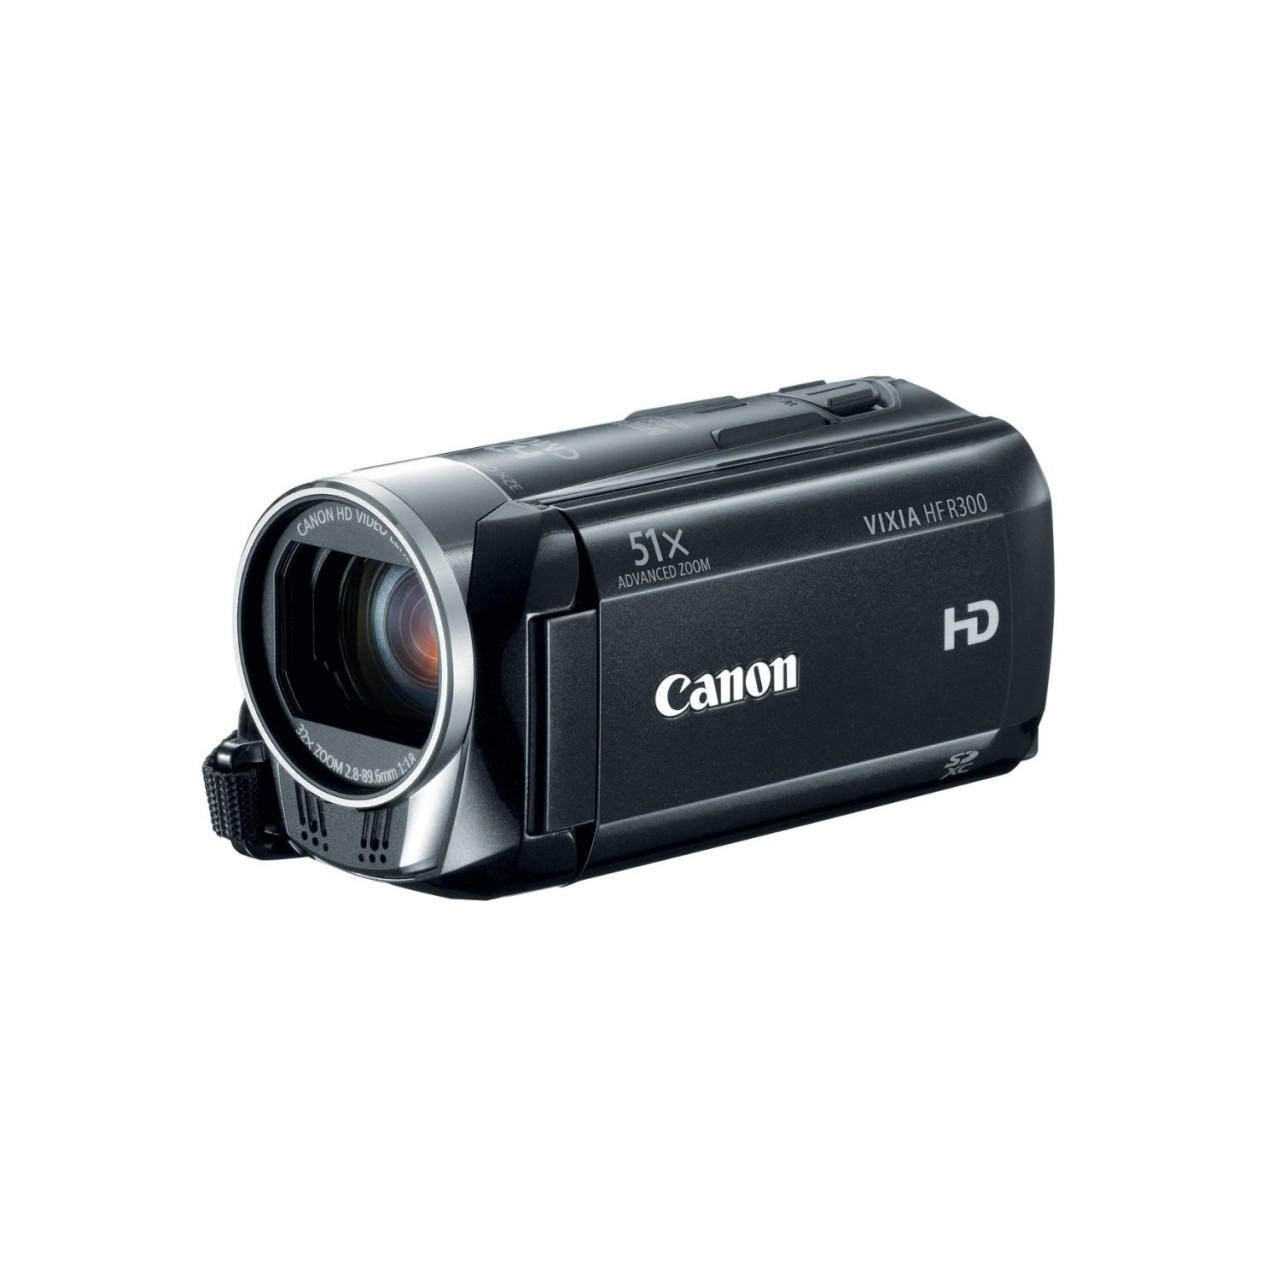 Canon HD 51x Image Stabilized Optical Zoom Camcorder